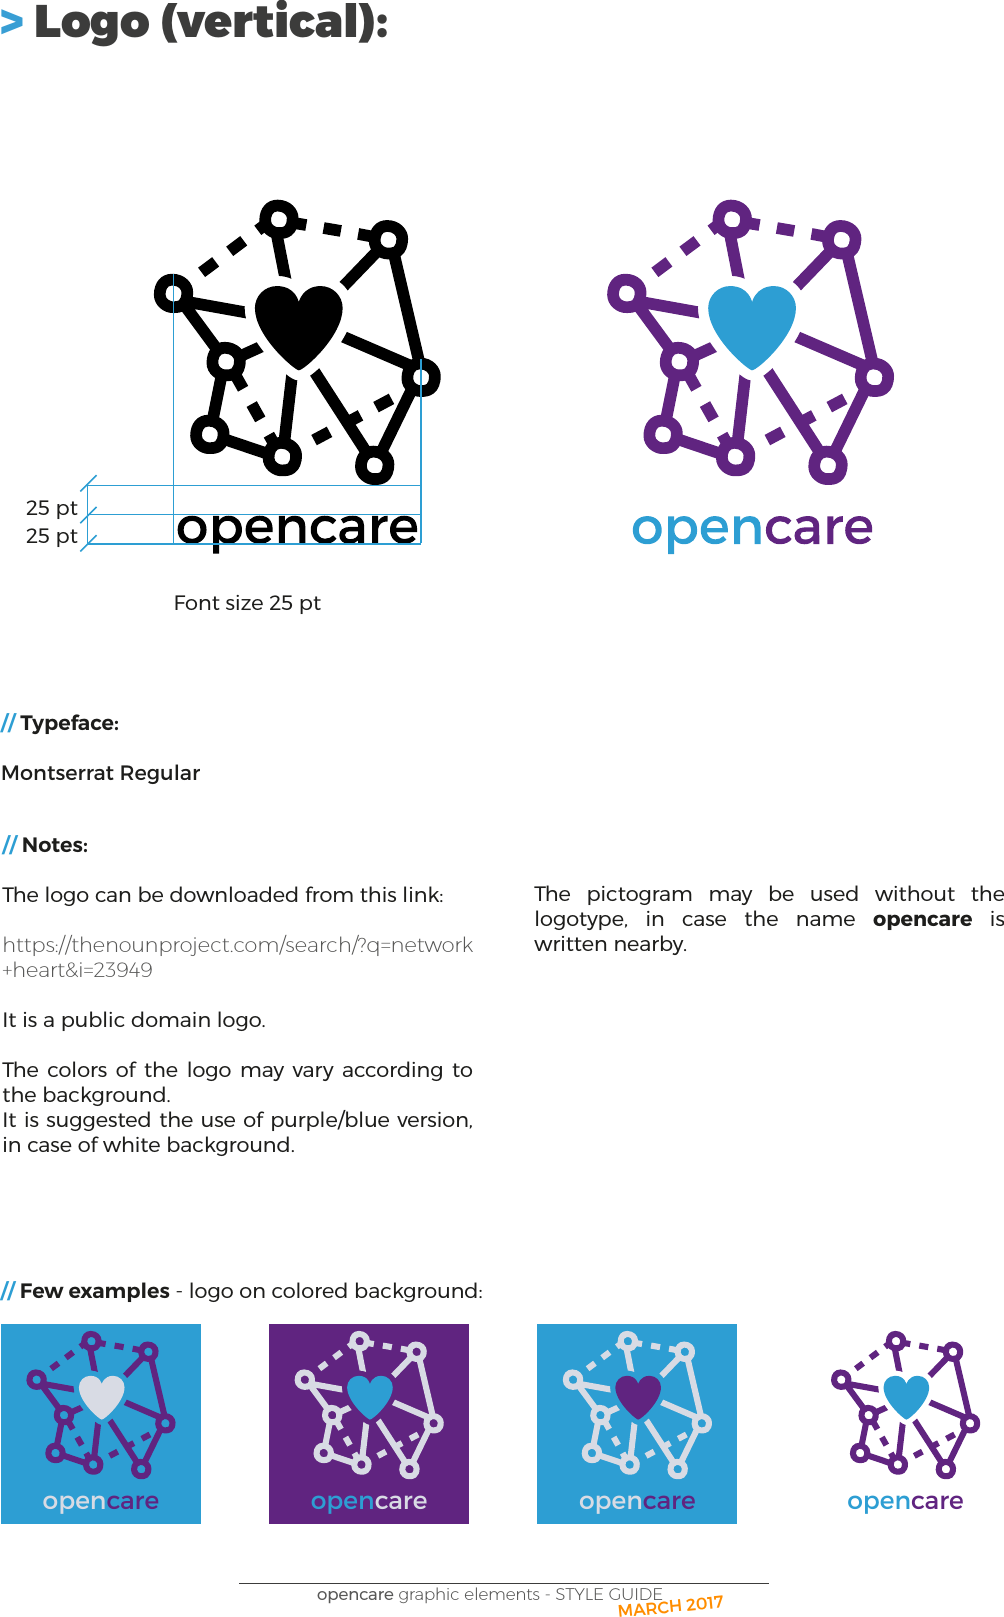 Opencare graphic guide